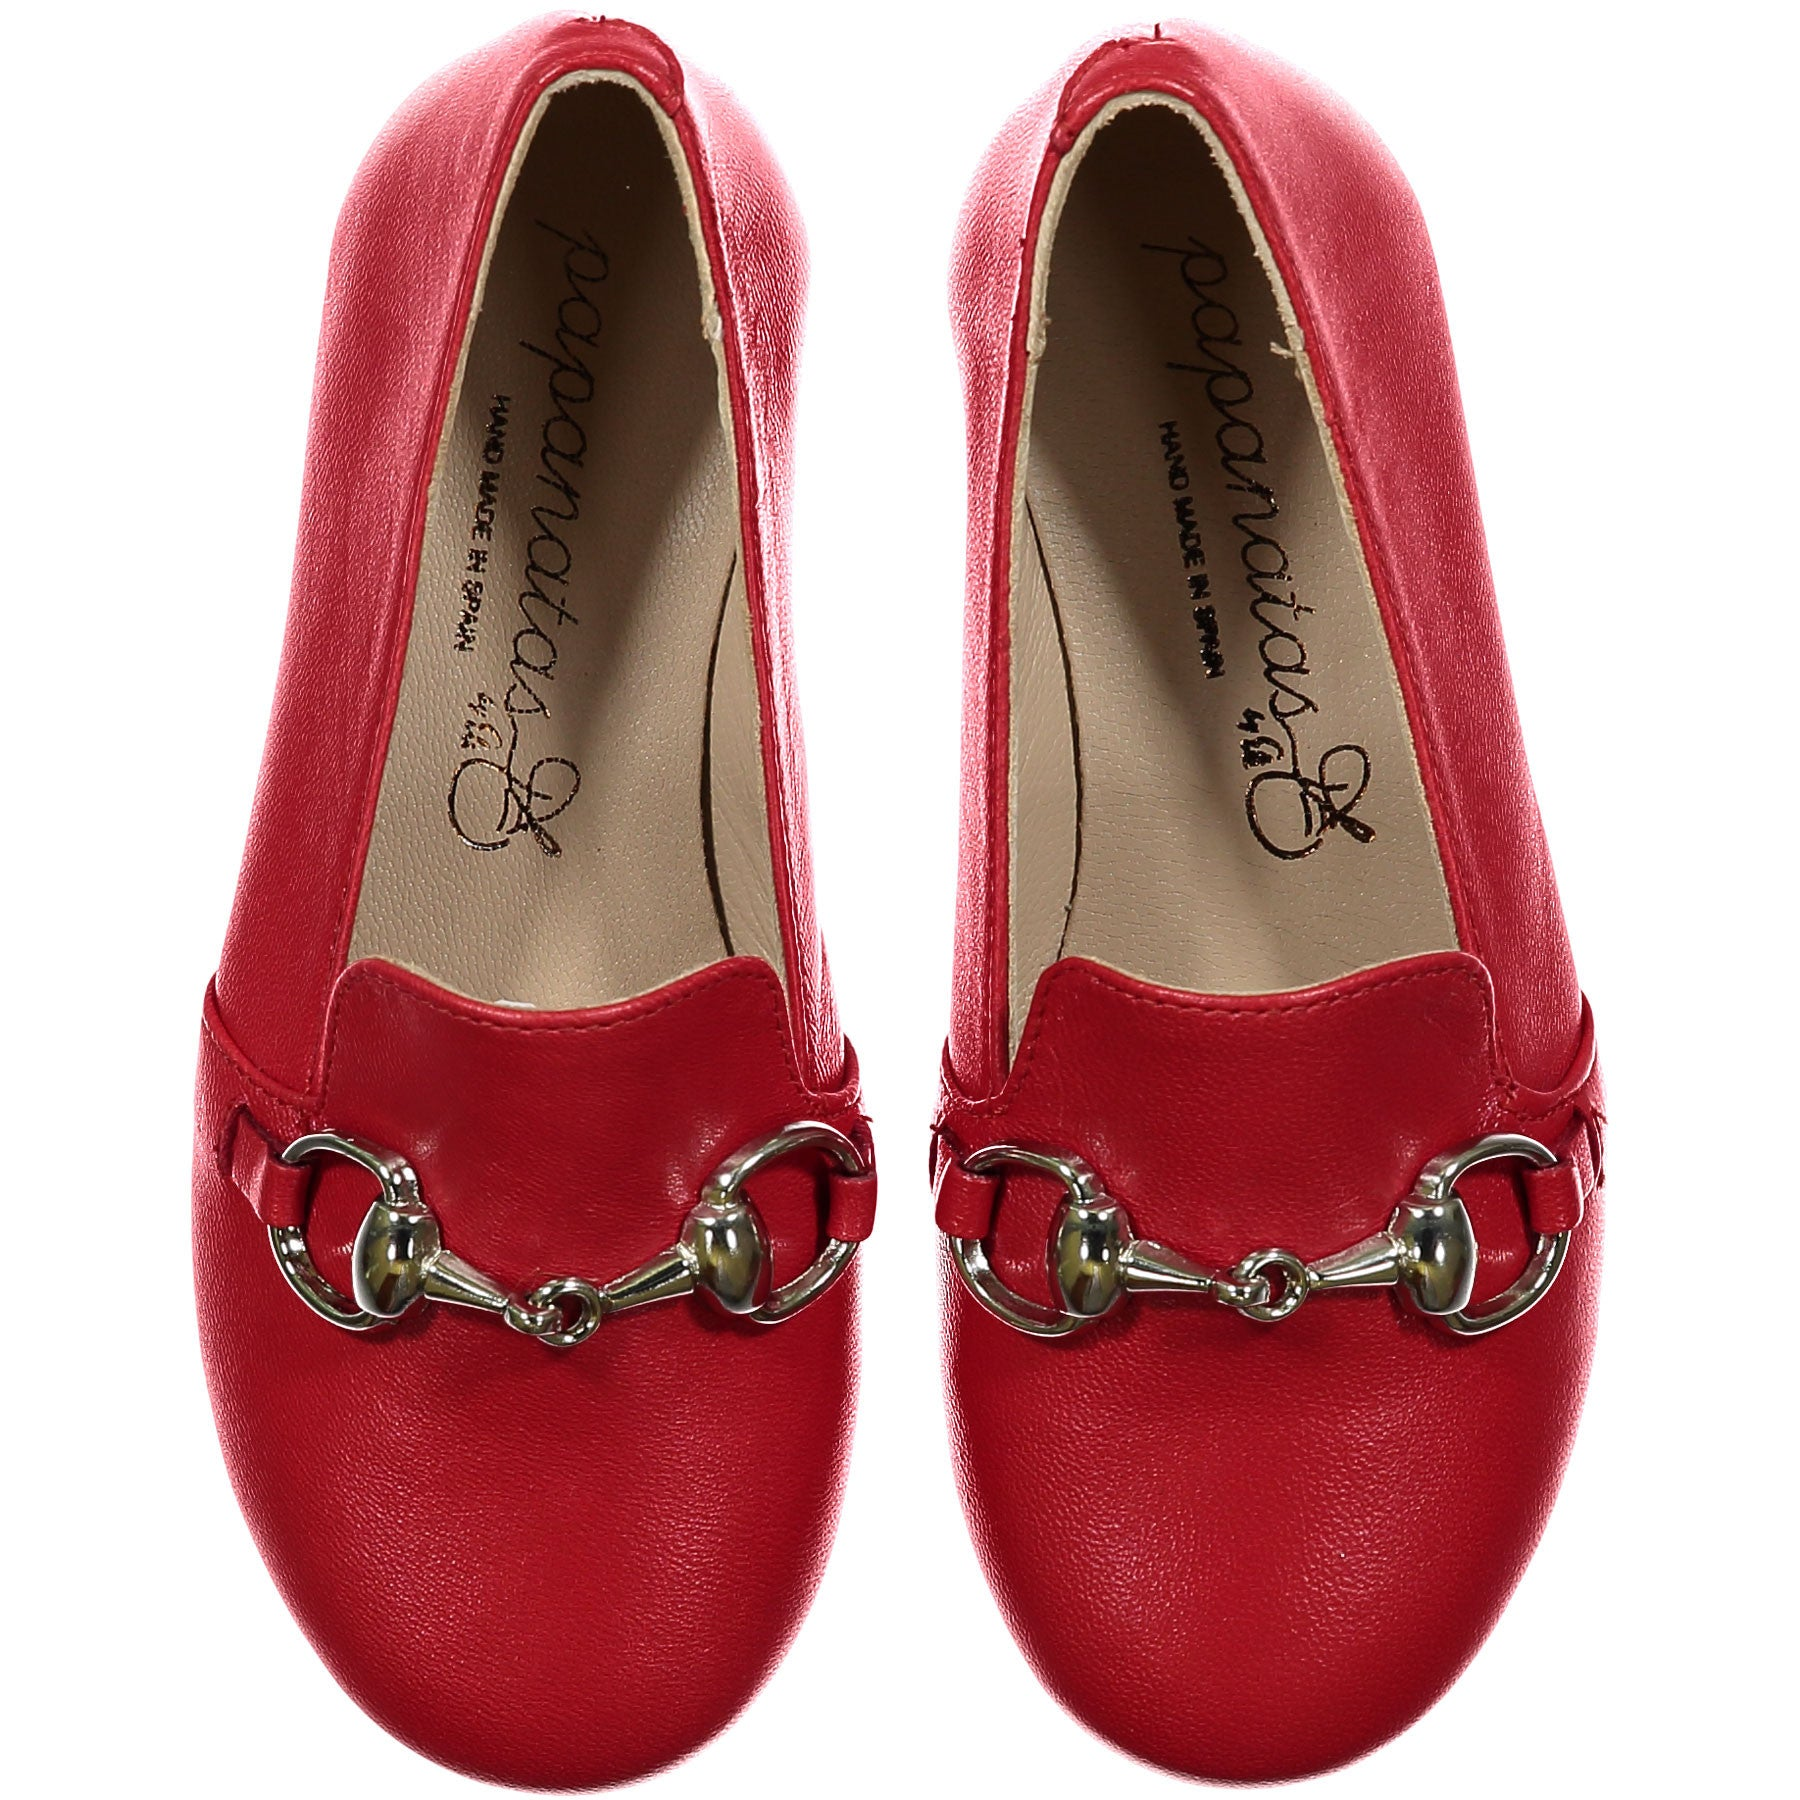 Papanatas Red Buckle Slip-Ons - Ladida